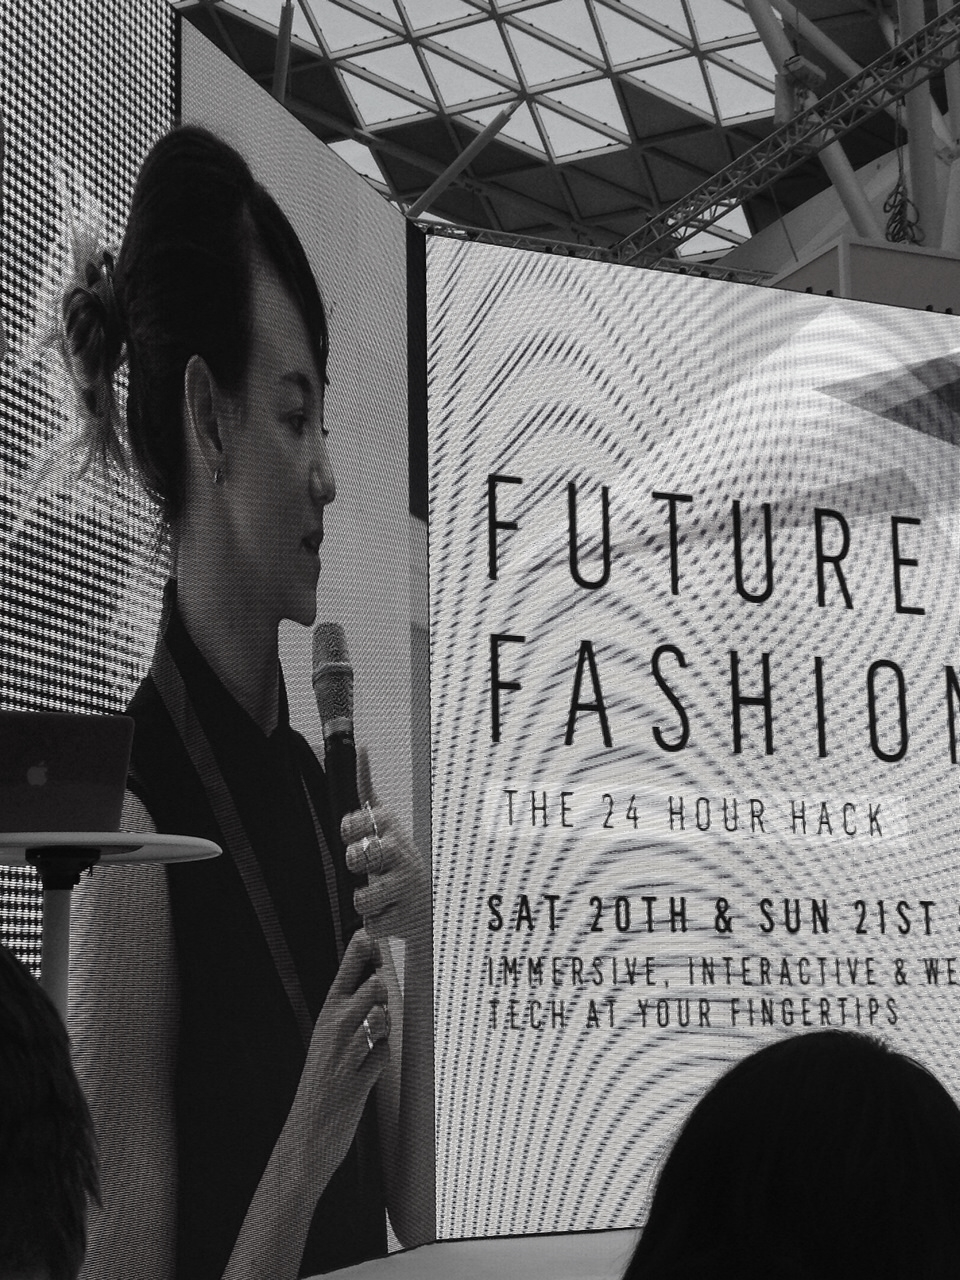 Presenter: Decoded Fashion Hackathon - Created a Wishlisting app with Holition (2014)